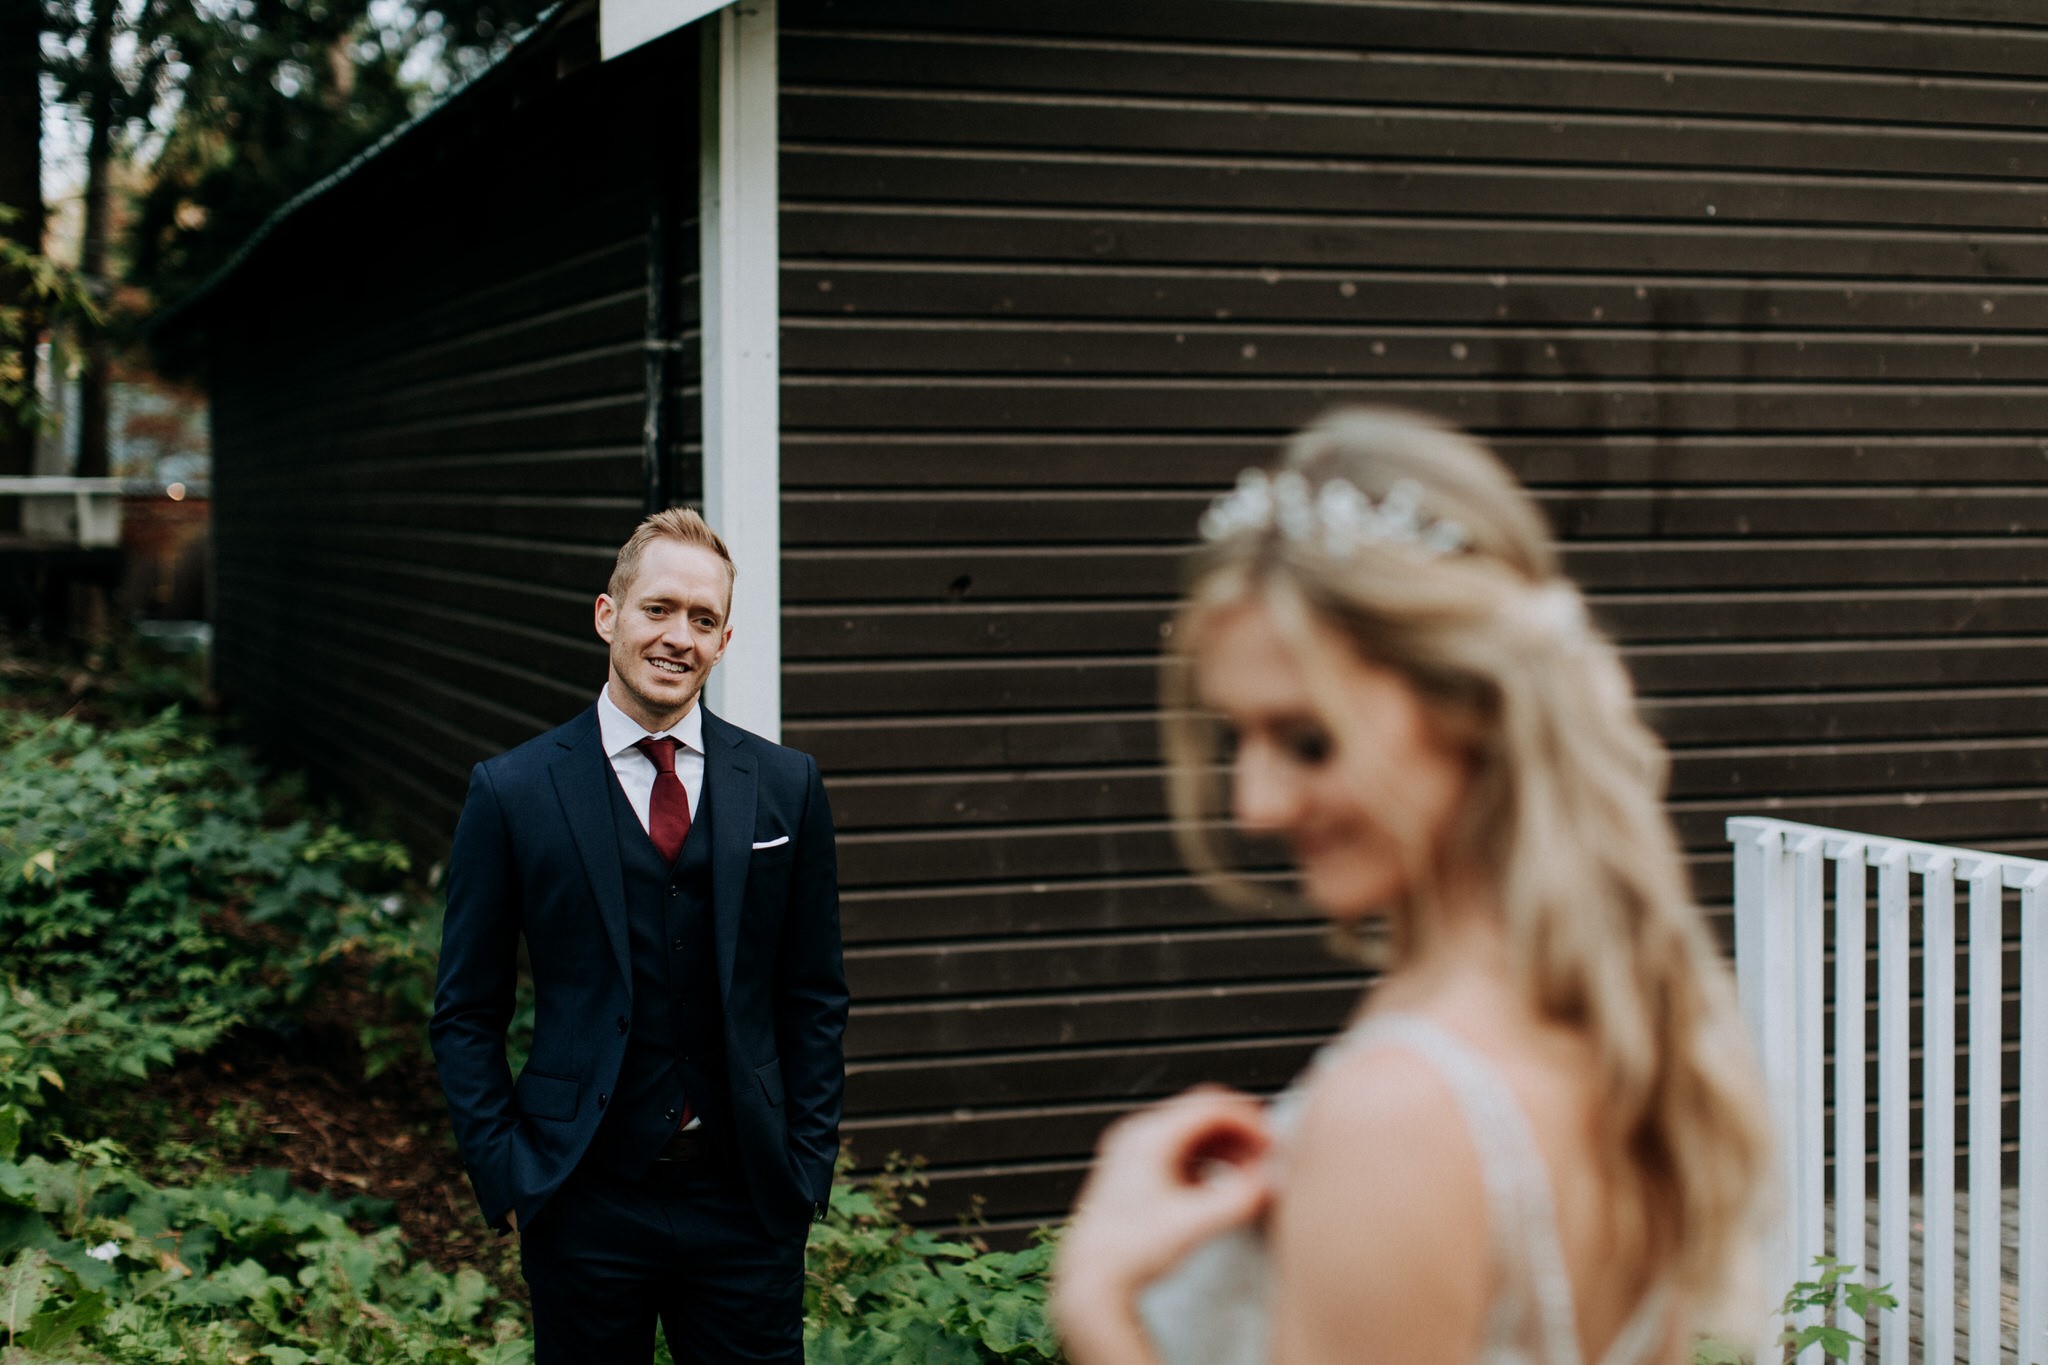 Camp Timberlane Wedding, Muskoka Camp Wedding, Camp wedding haliburton, huntsville wedding, muskoka wedding photographer